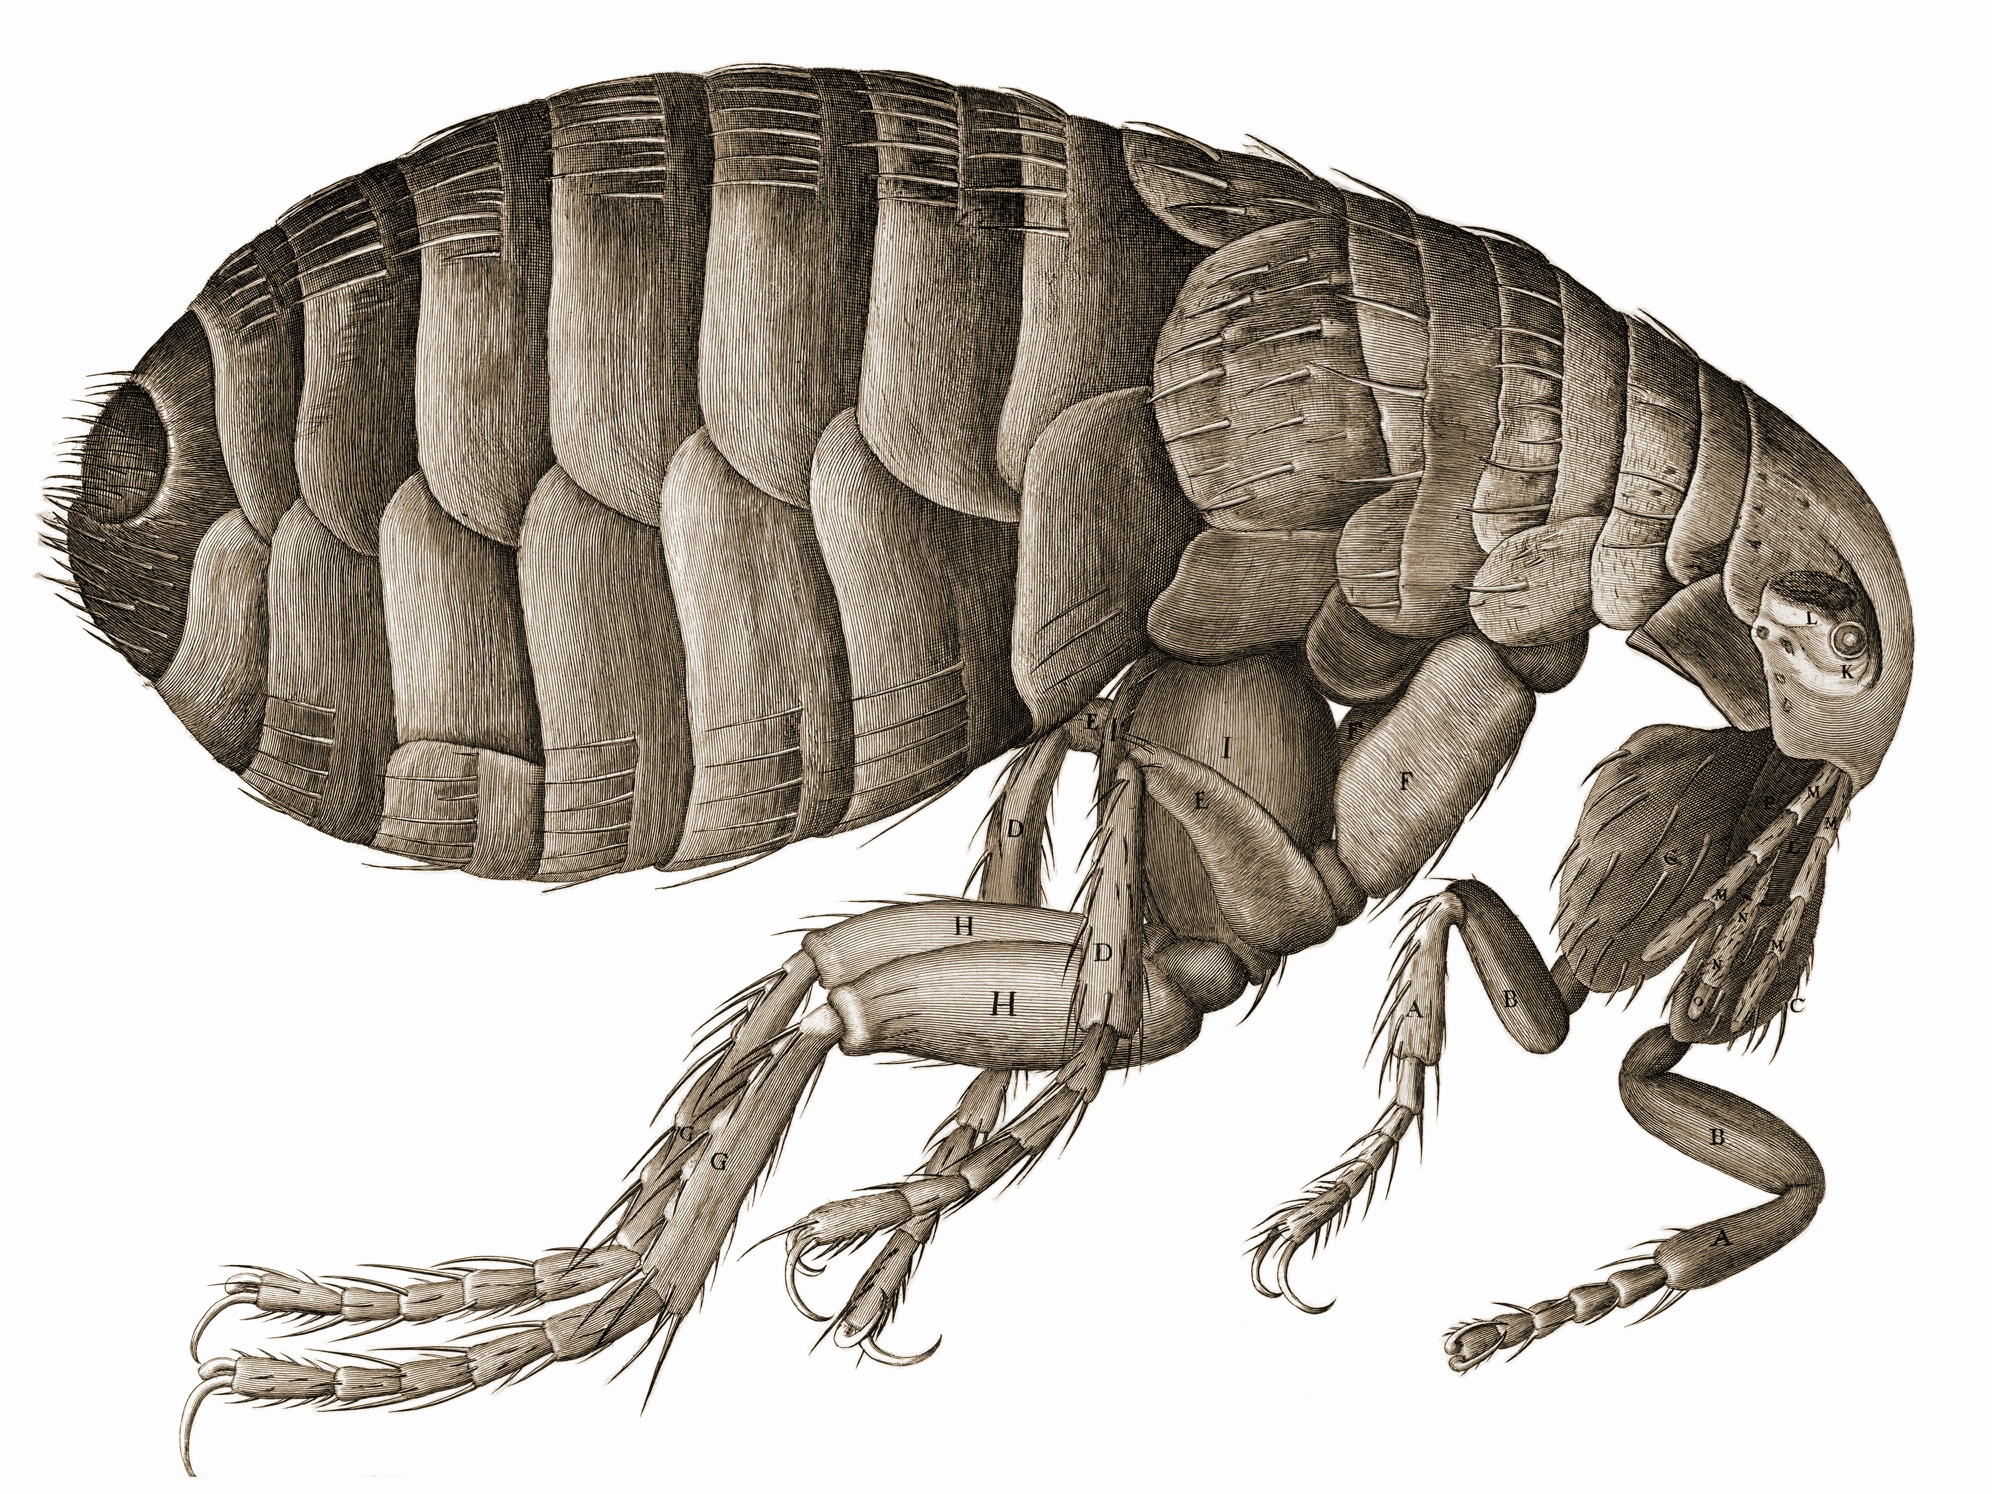 A flea - the carriers of the Bubonic Plague